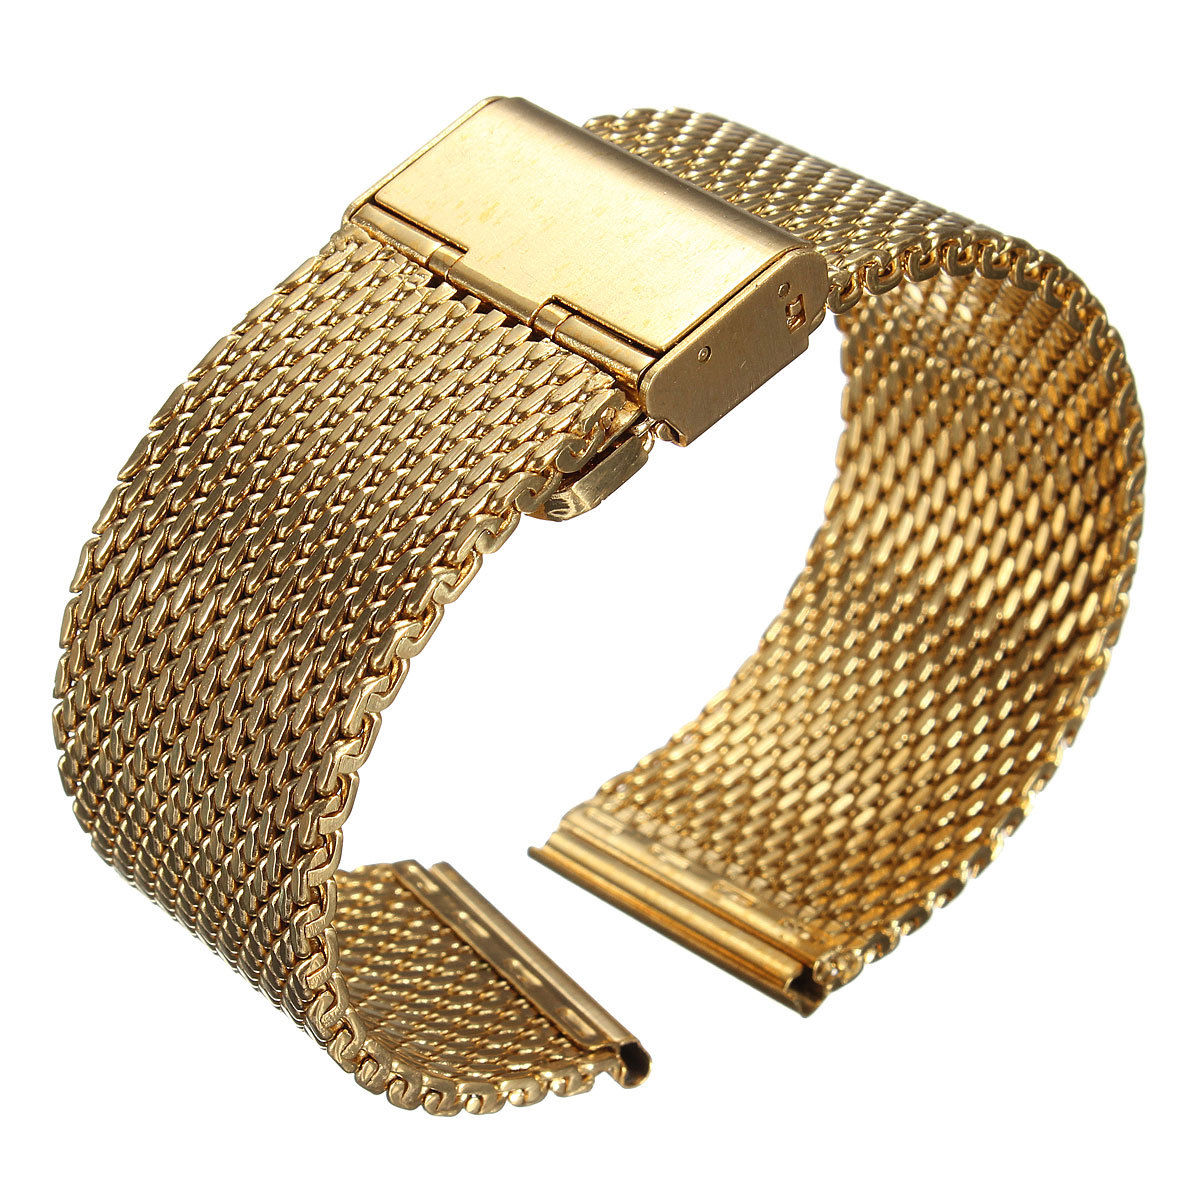 YCYS!New 22mm Watch Strap Shark Mesh Band Stainless Double Clasp Steel Bracelet Gold watch band 22mm new gold brushed stainless steel bracelet watchbands strap bracelets double flip lock clasp free shipping